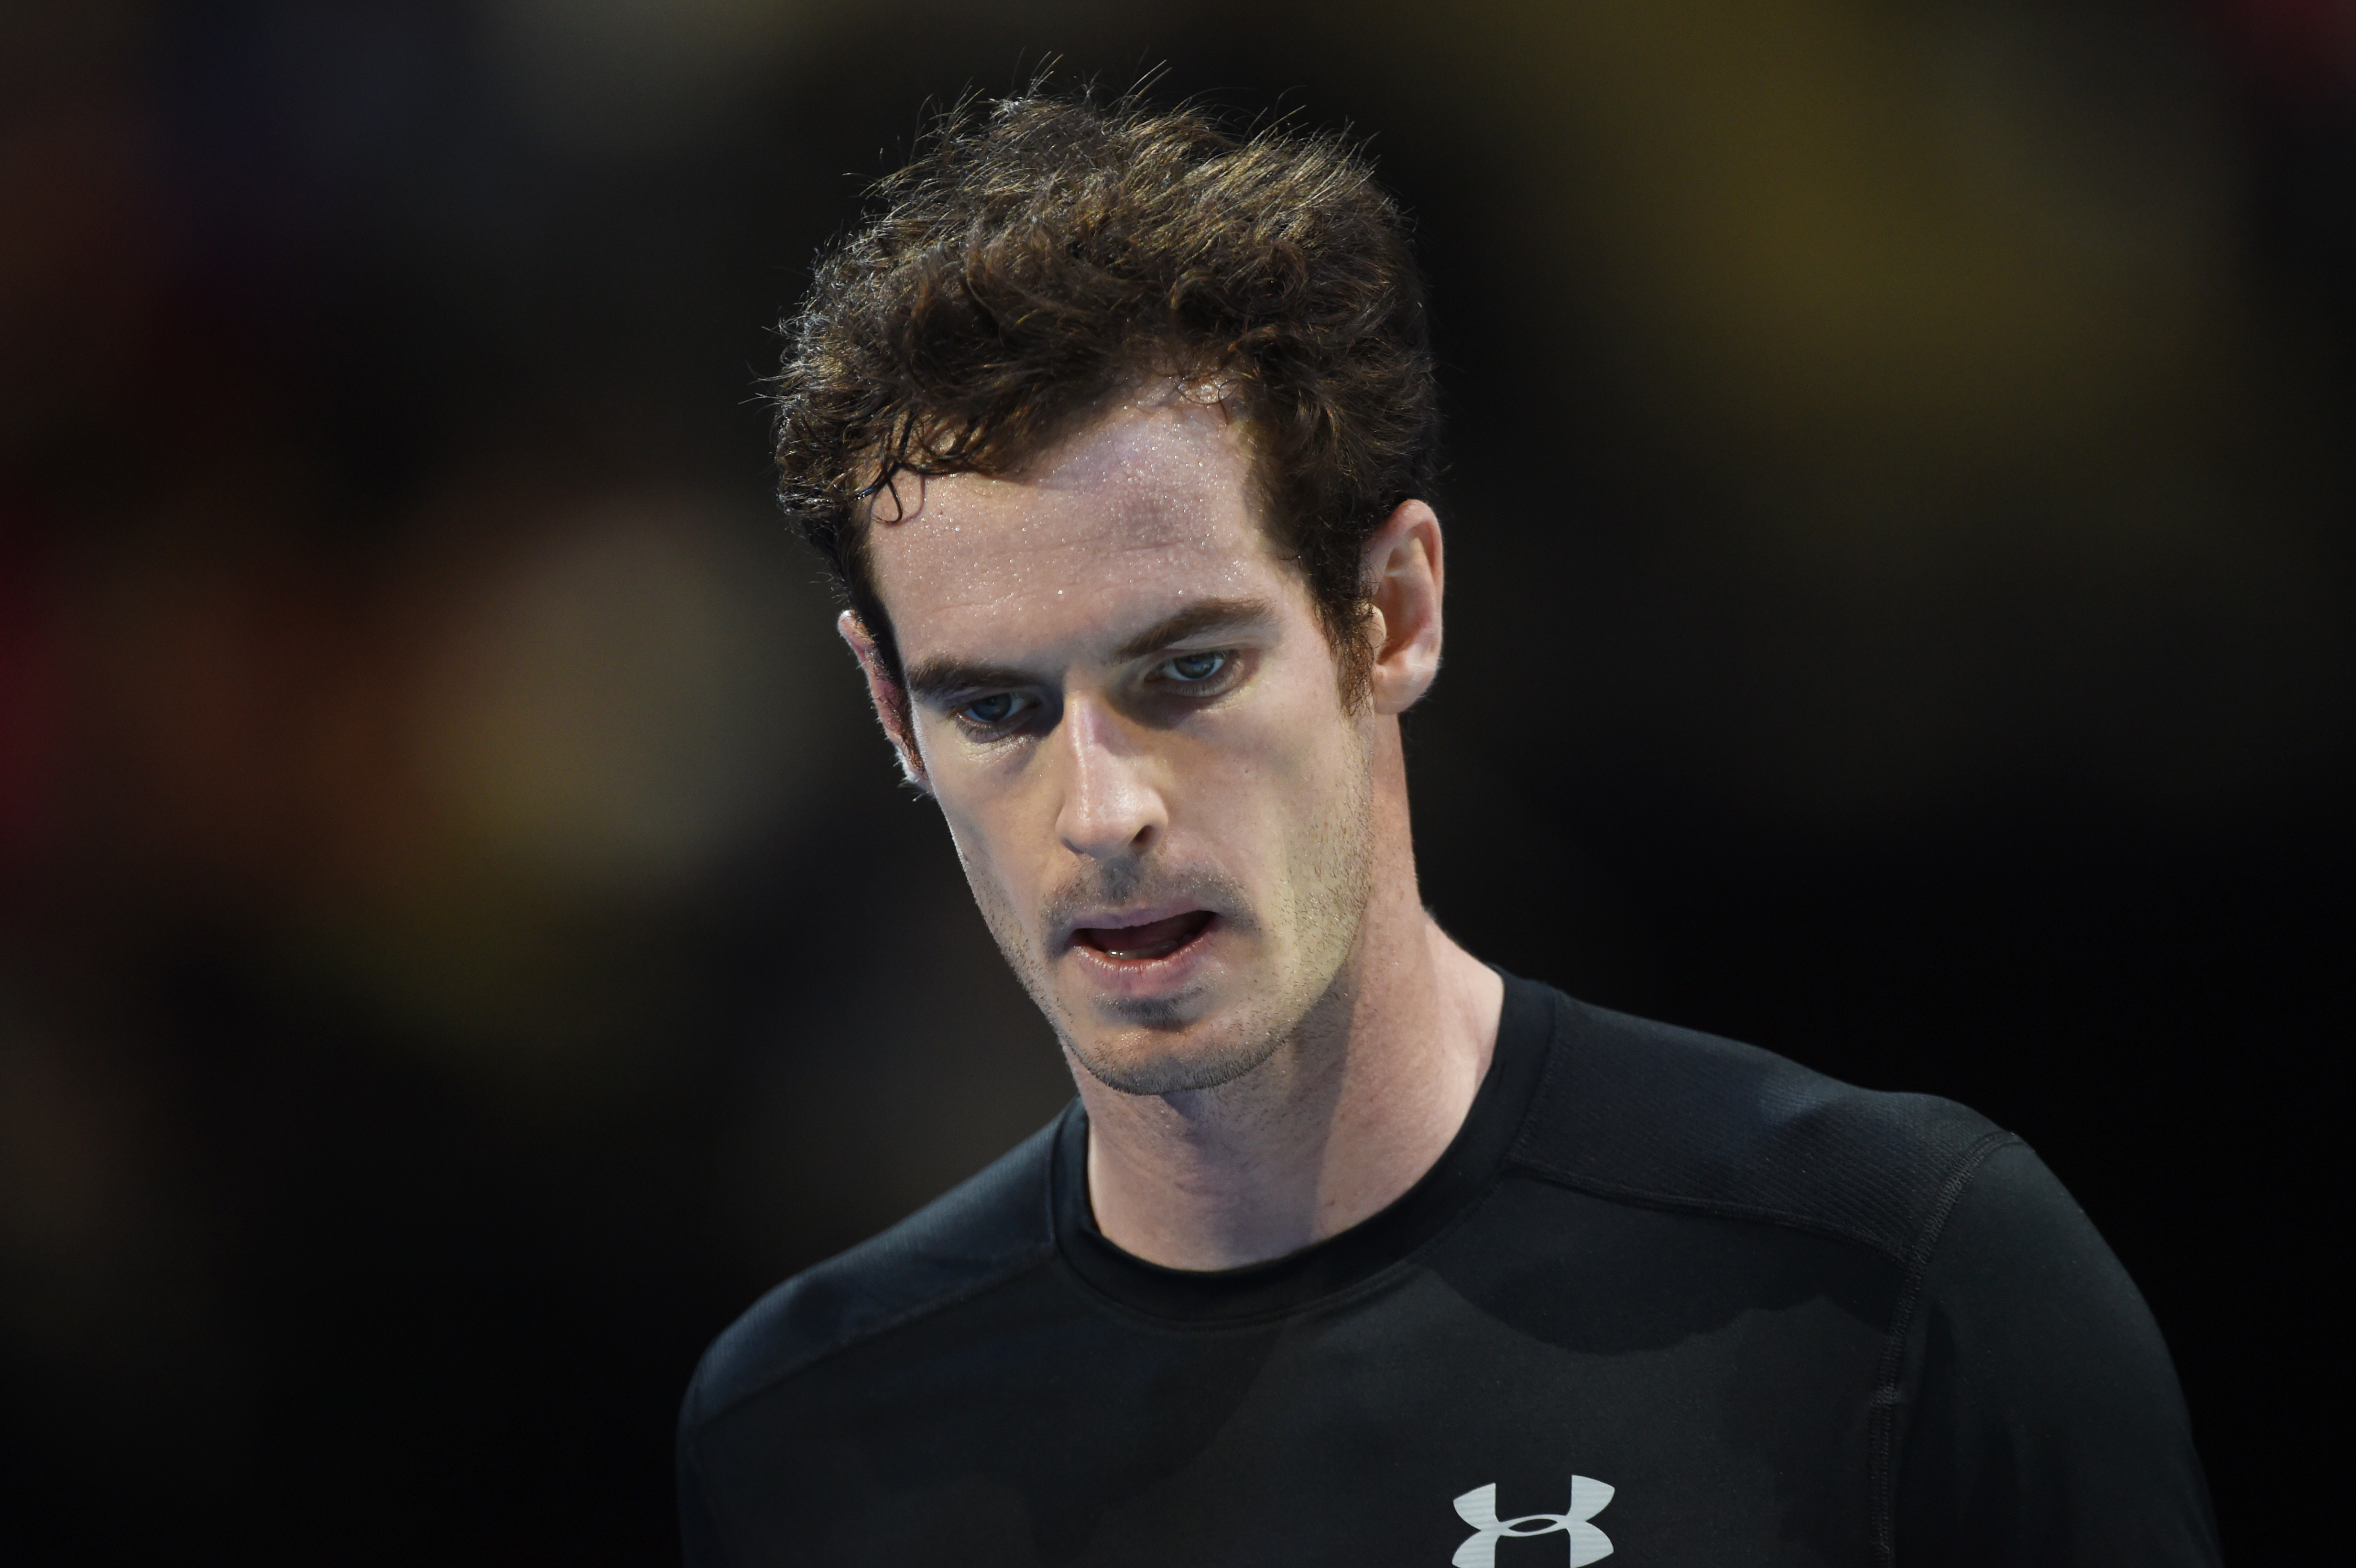 Andy Murray of Great Britain reacts during his match against Rafael Nadal of Spain during Barclays ATP World Tours Finals at O2 Arena in London on Wednesday, November 18, 2015. Photo: Reuters